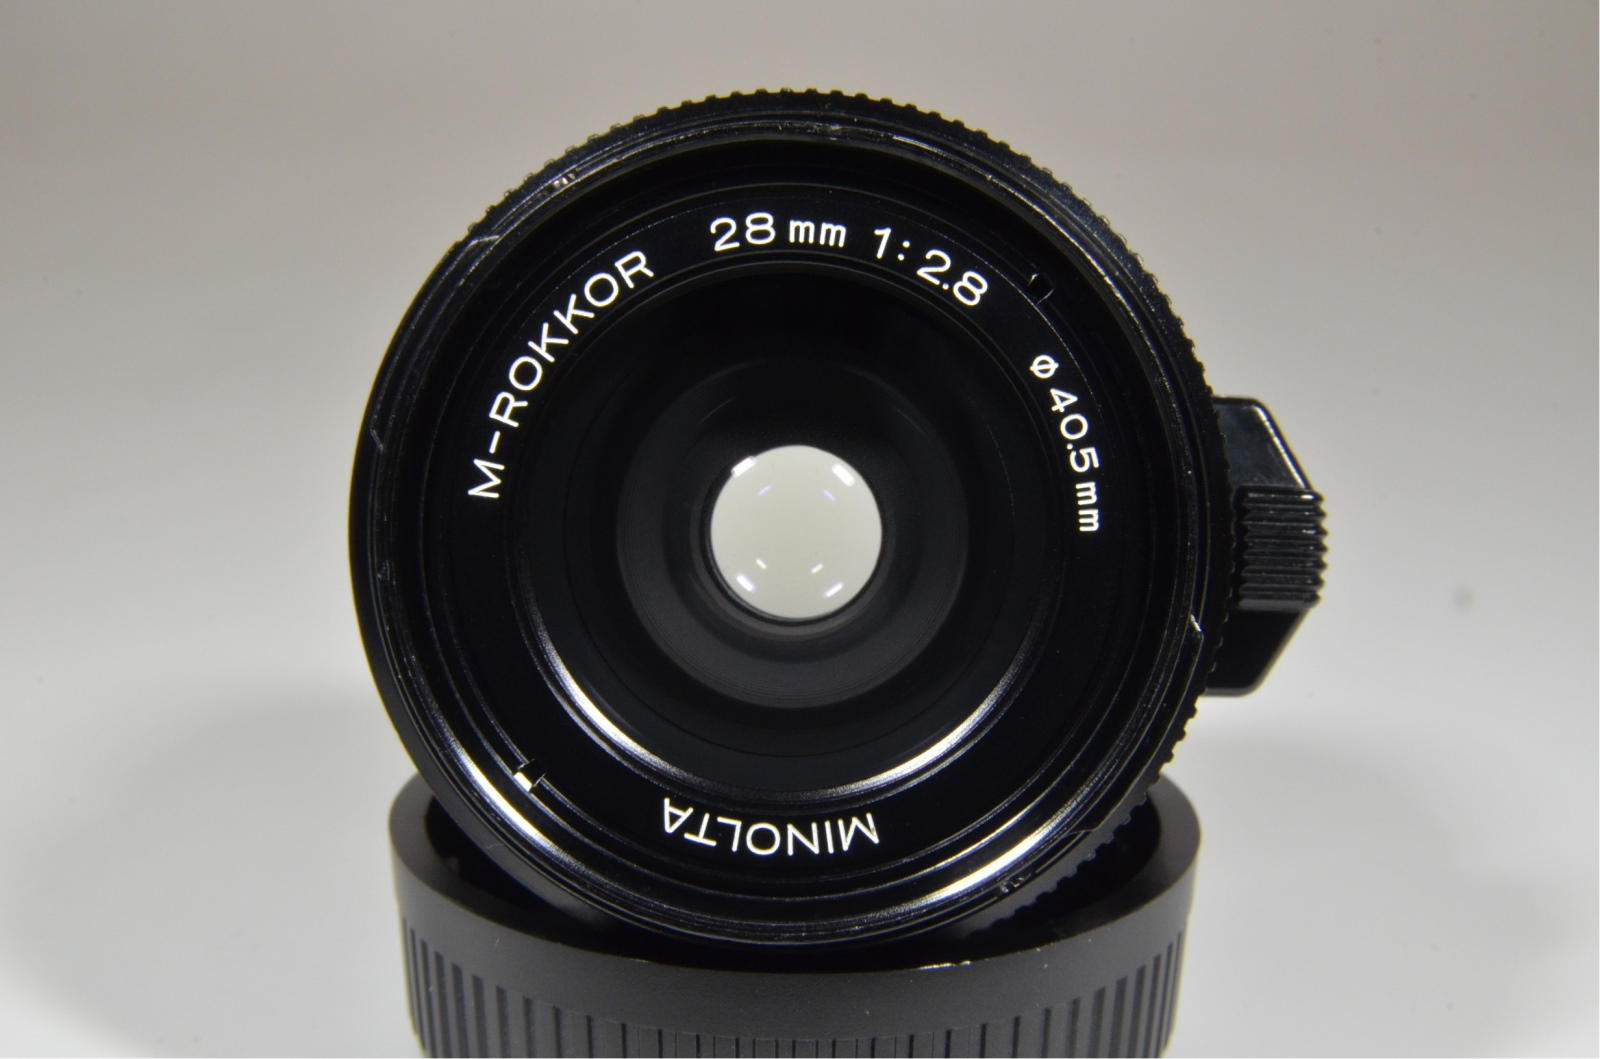 minolta cle film camera w/ m-rokkor 40mm f2, 28mm f2.8, 90mm f4, flash and grip film tested